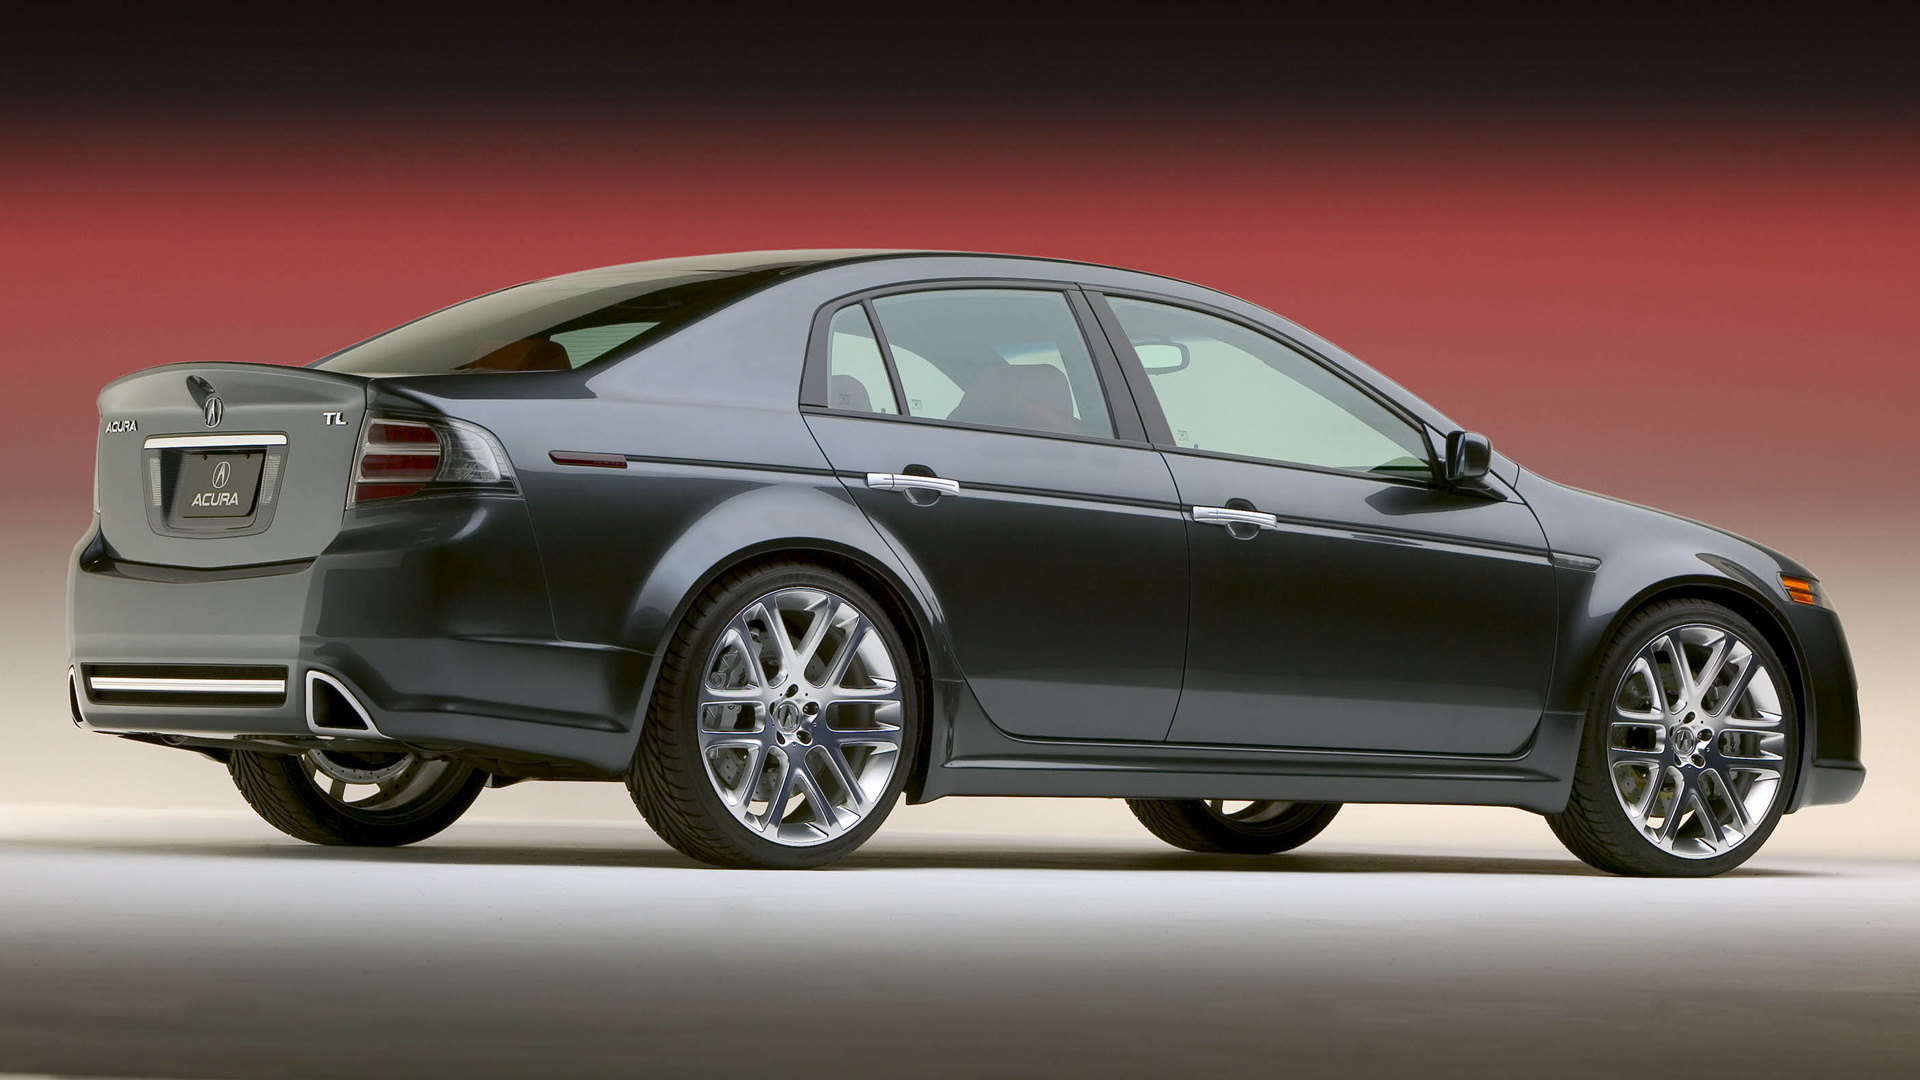 2004 Acura Tl A Spec Concept Wallpapers And Hd Images Future Cityconnectapps